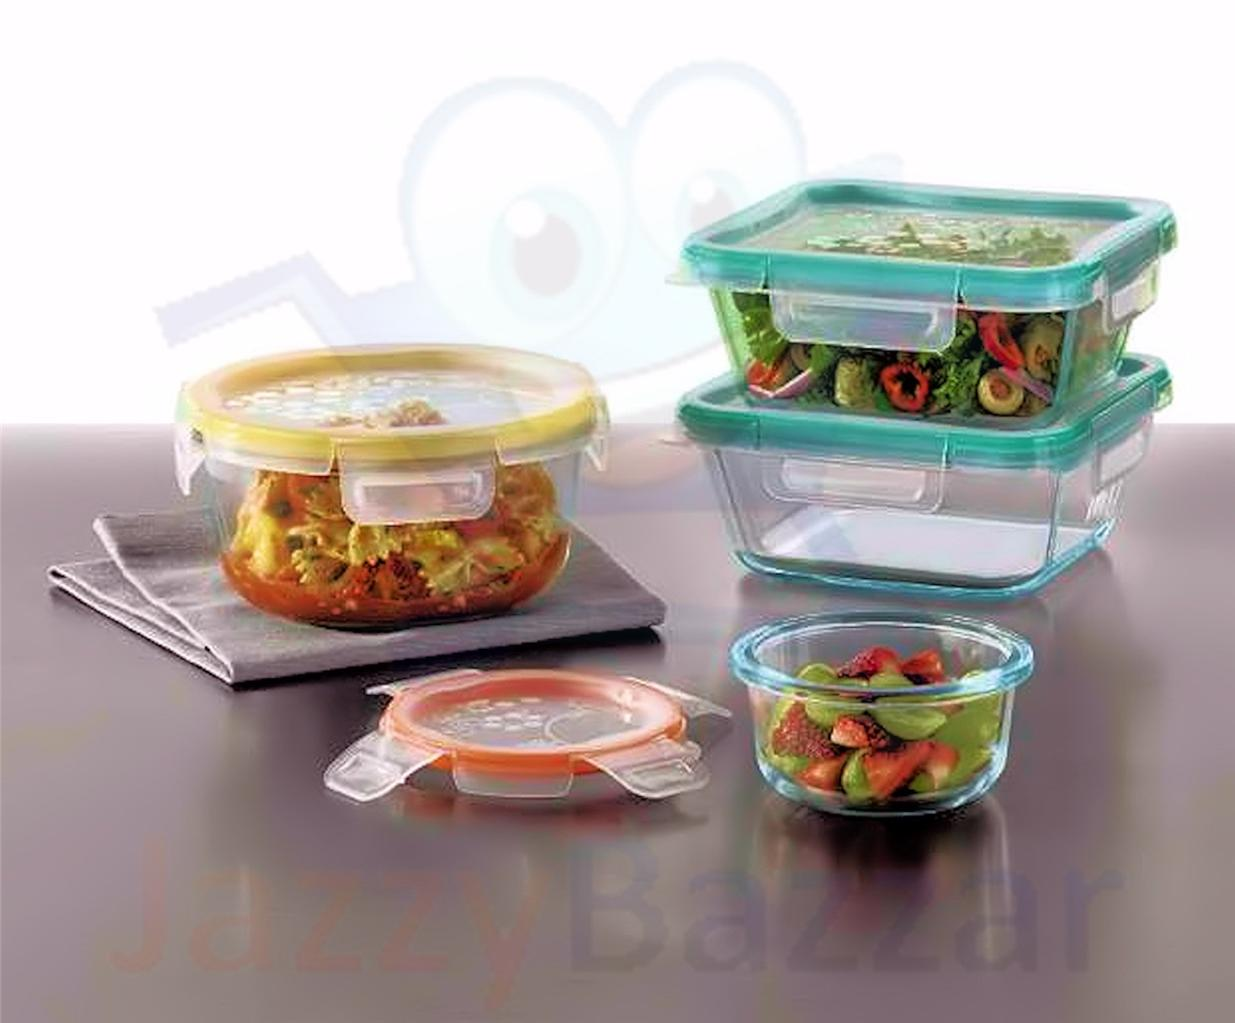 Pyrex Snapware Glass - 53 results from brands Snapware, PYREX, Corningware, products like Snapware Pc. Glass Meal Prep Set, Snapware Pyrex piece Glass Food Storage Set, Corningware Pyrex 18 Pc. Glass Storage Set With Lids , Kitchen & Dining.